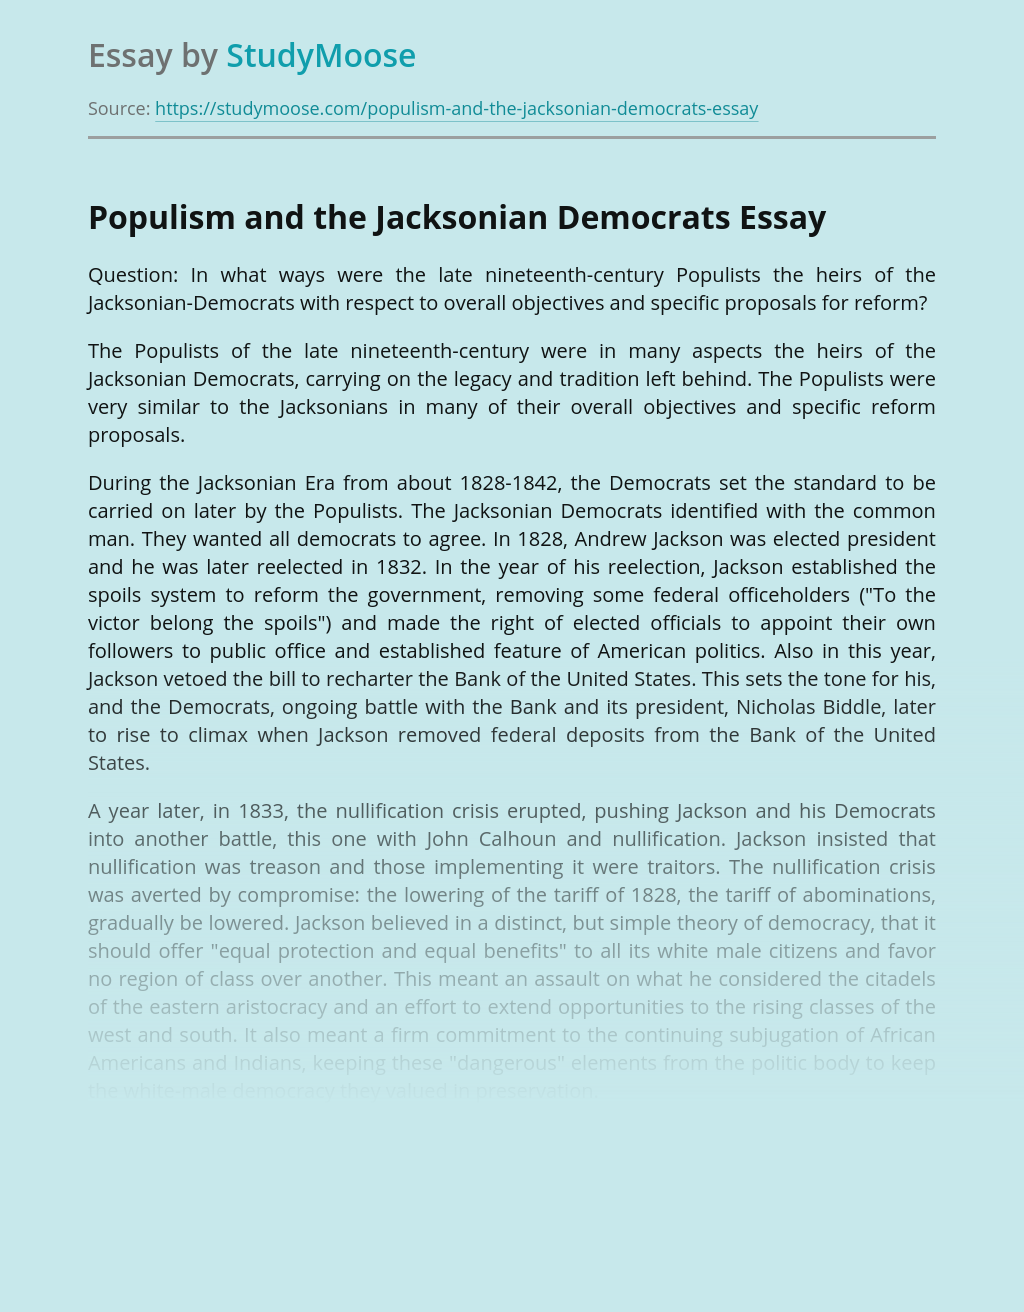 Populism and the Jacksonian Democrats